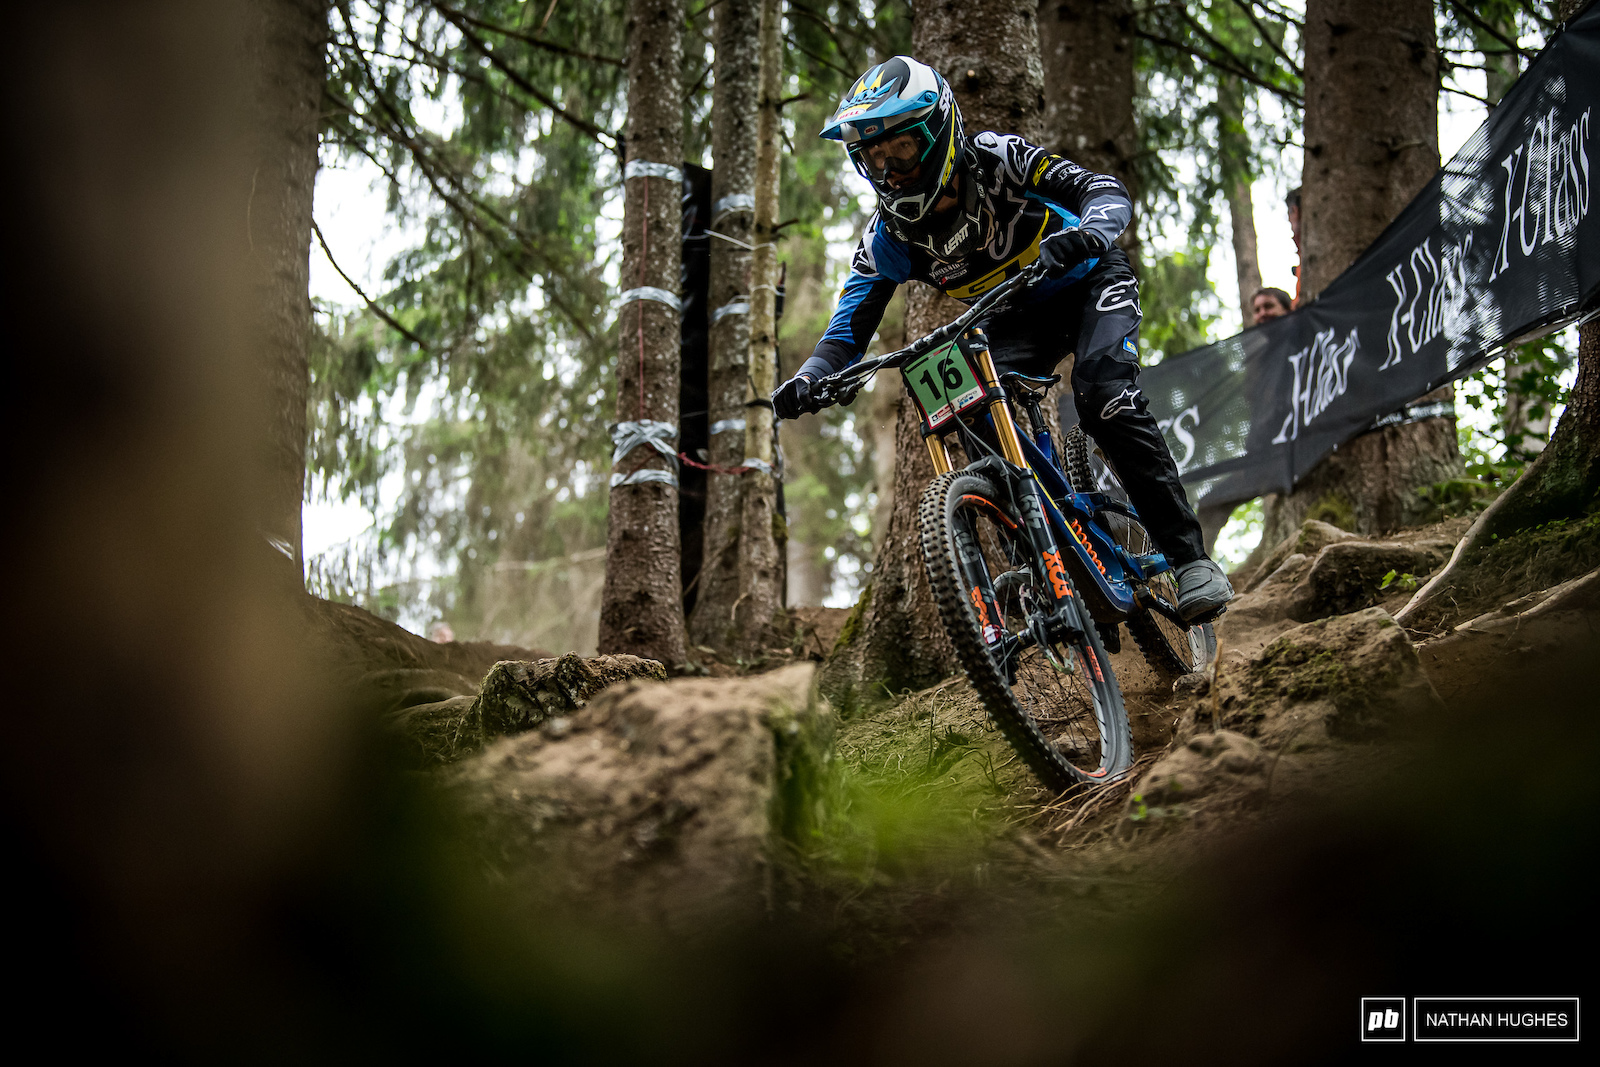 Joseph Foresta riding to 3rd place in the loam today in the juniors.